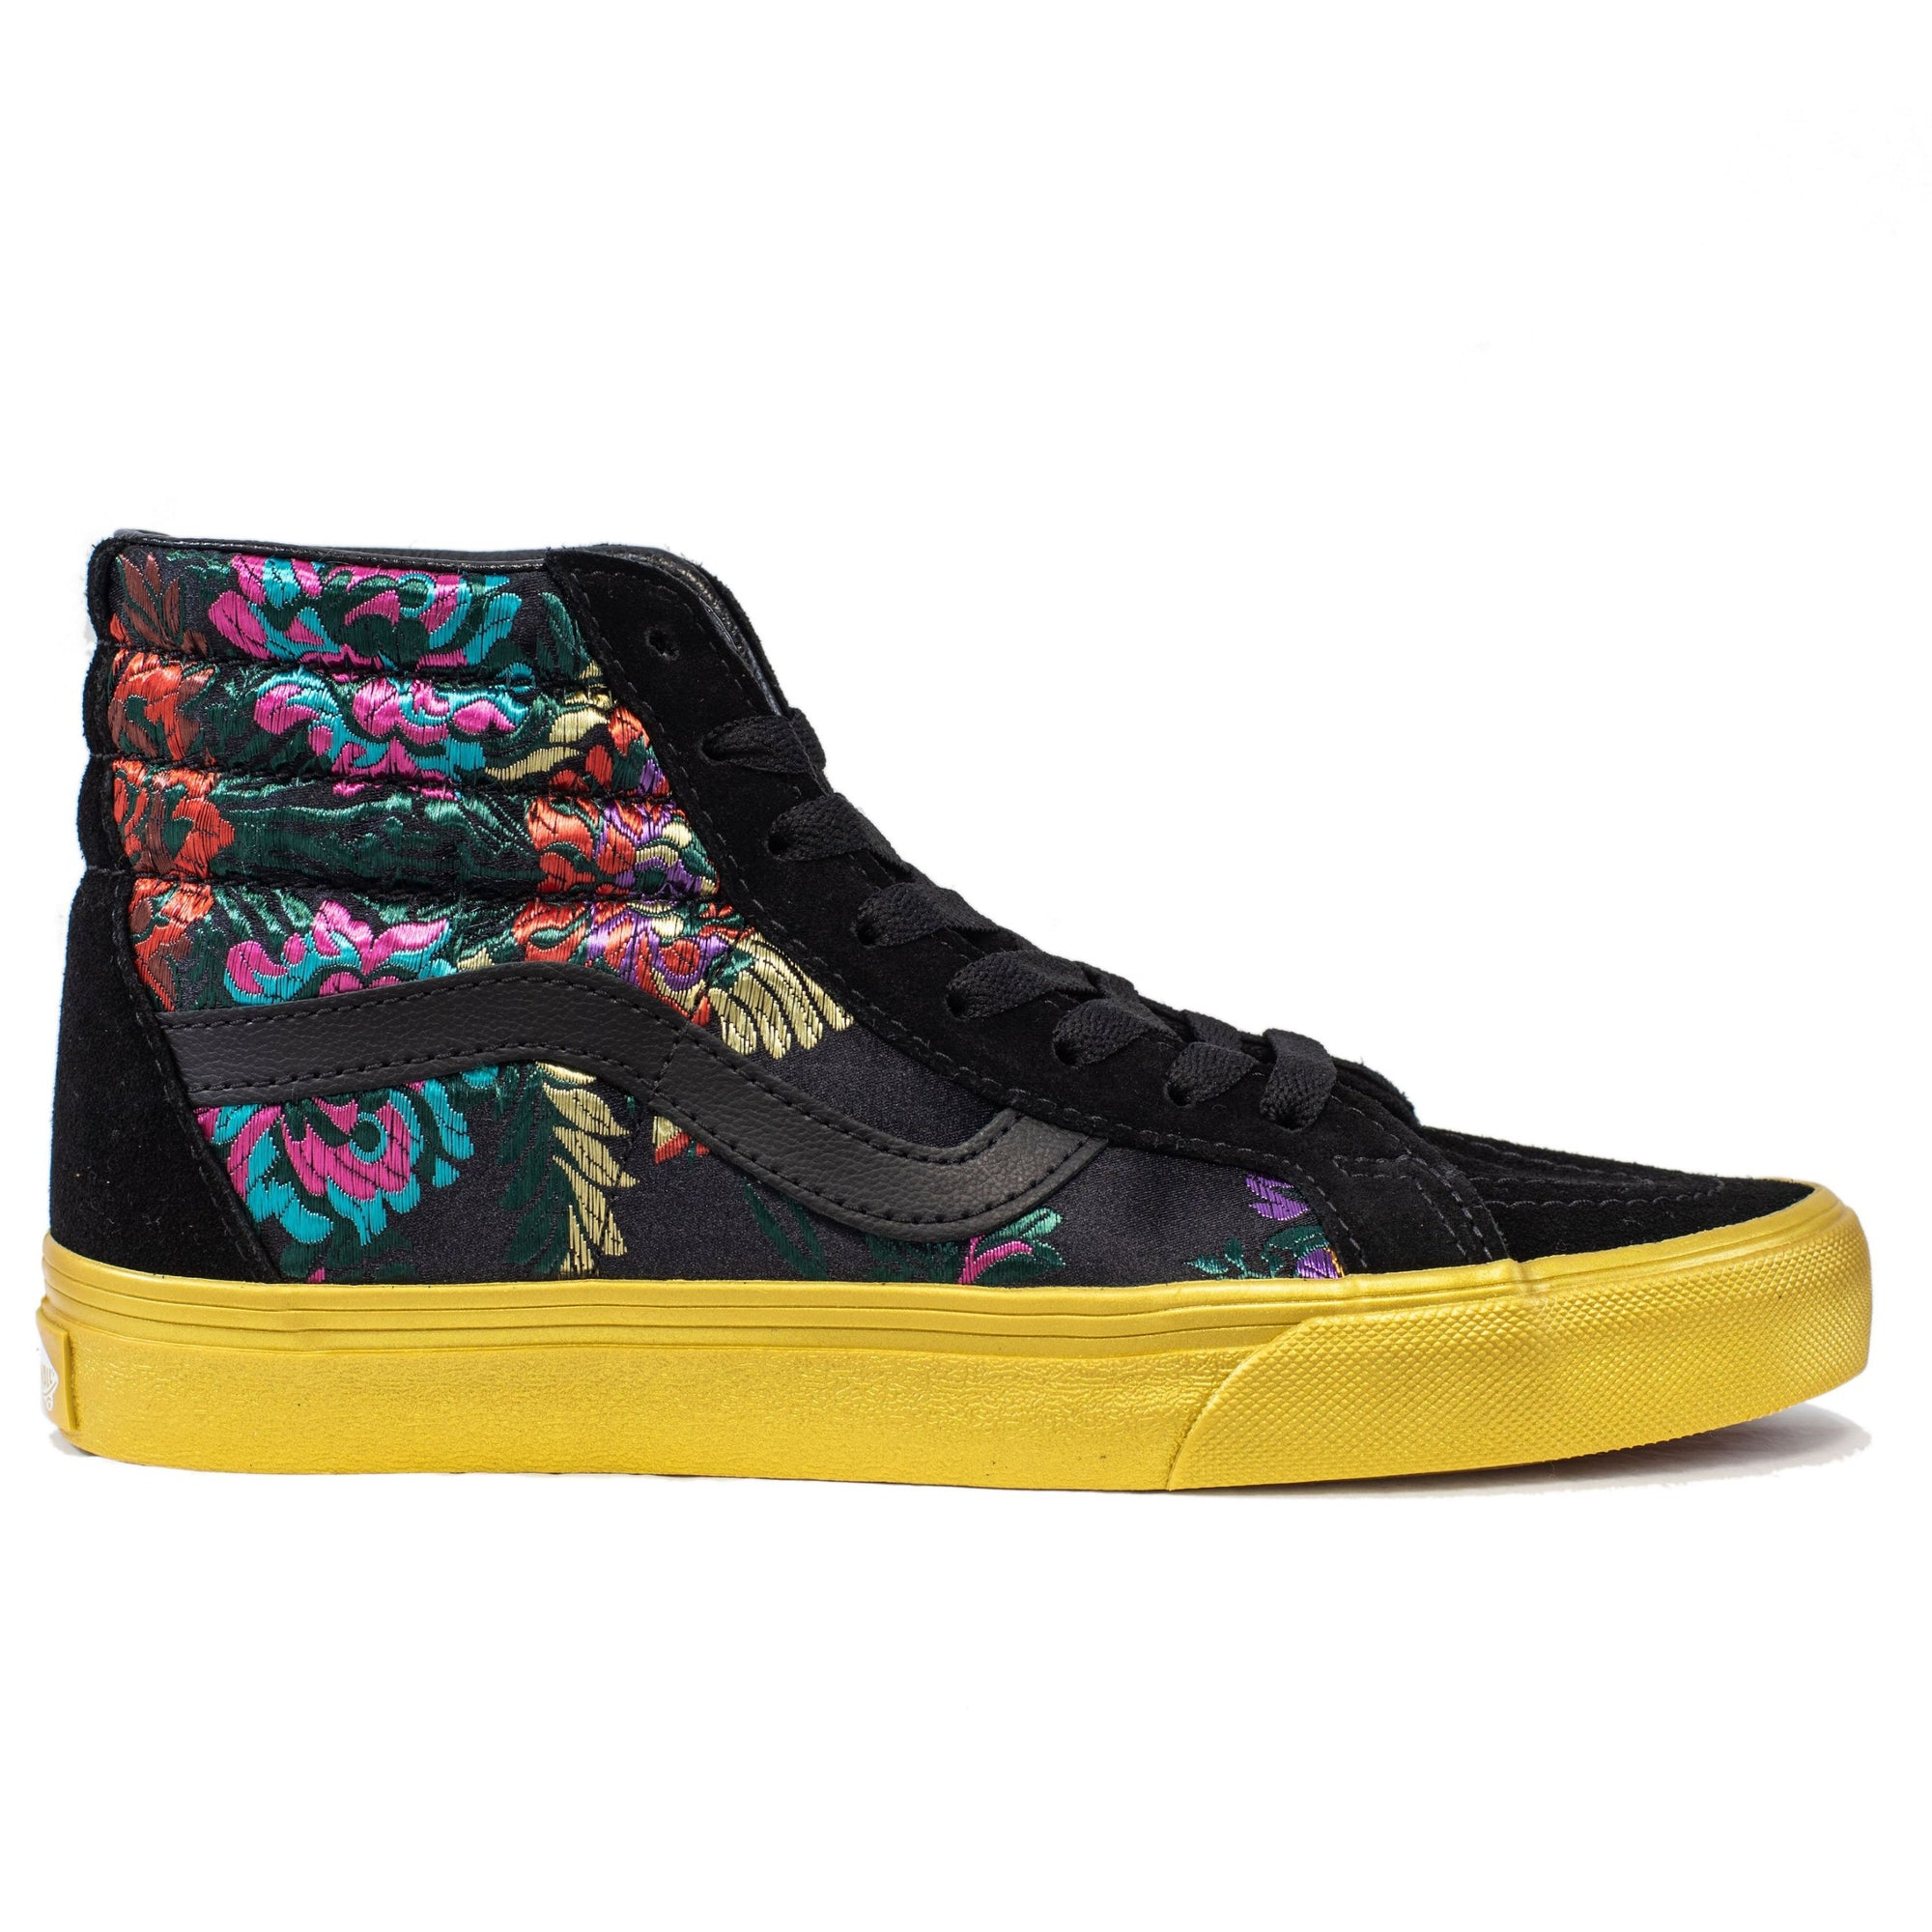 ab474500a91 Vans SK8-Hi Reissue - (Festival Satin) Black Gold - Chane